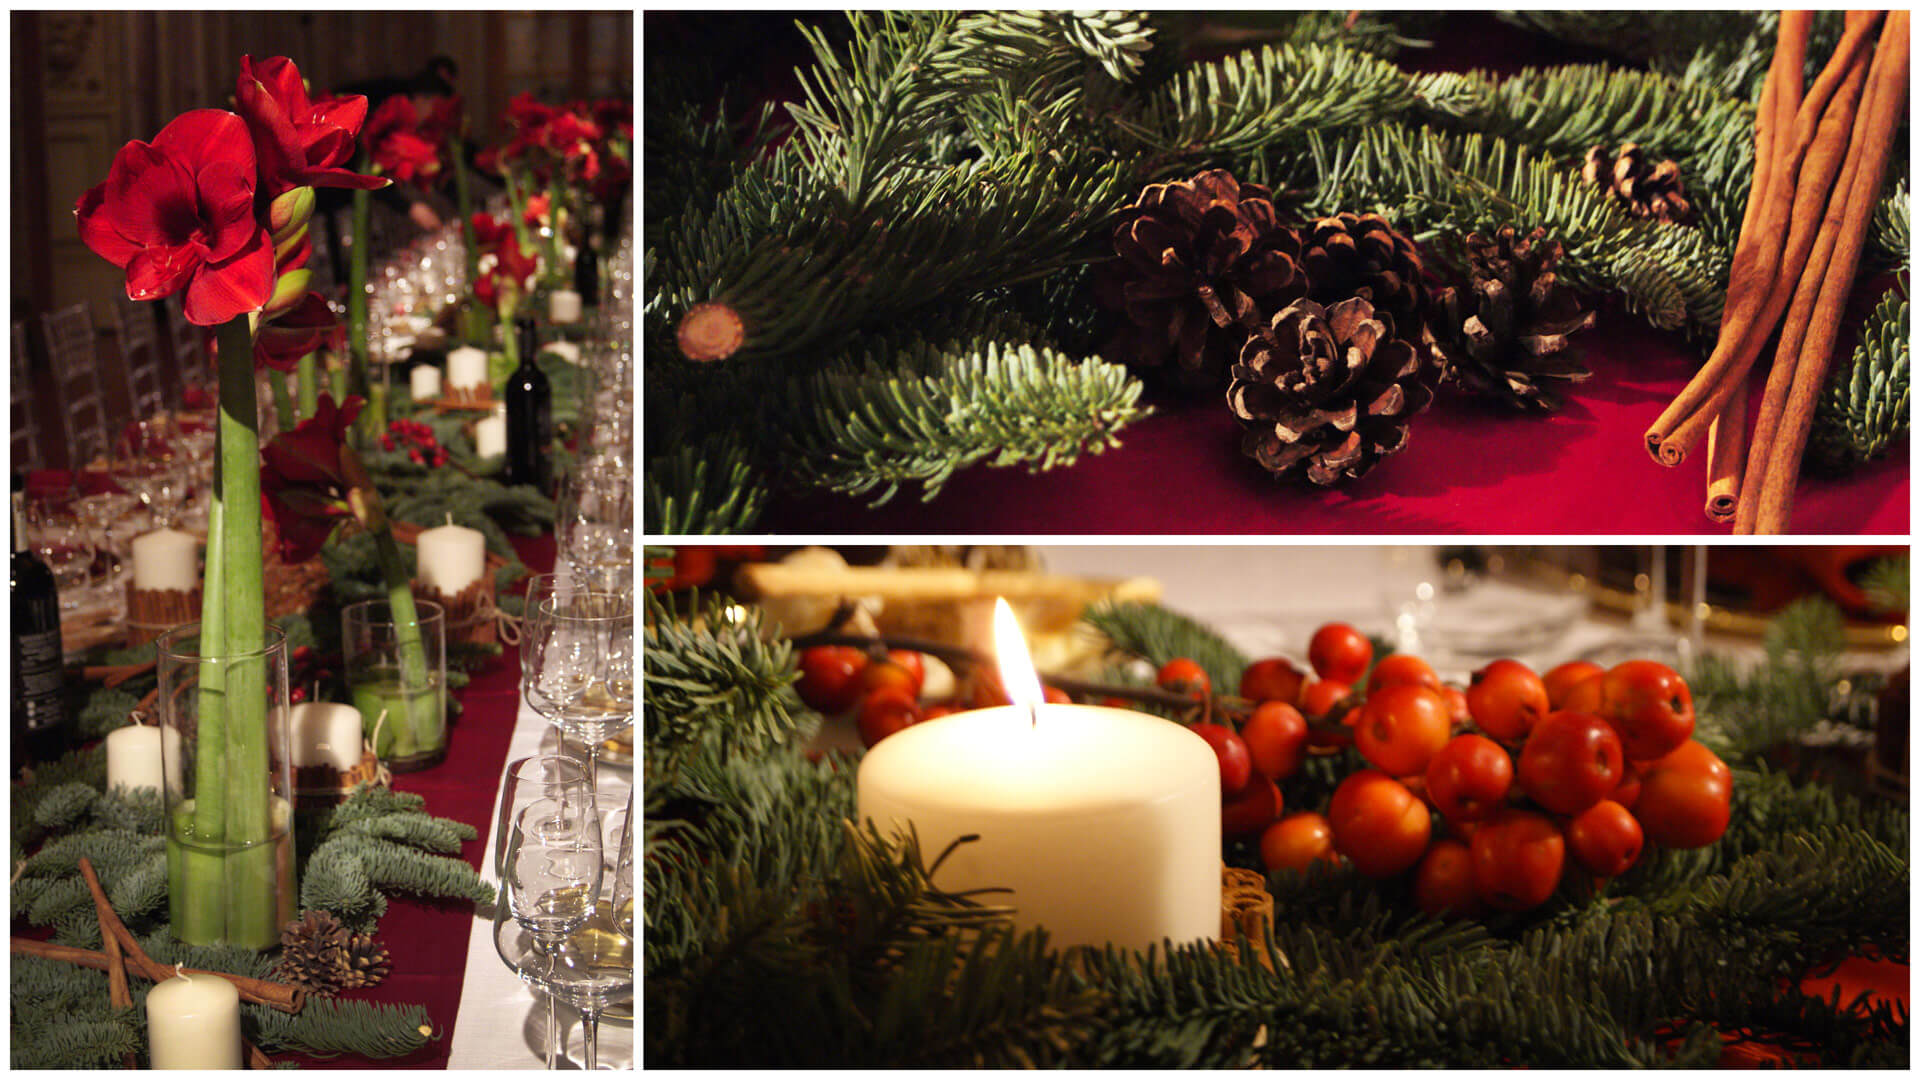 fiorile_firenze_christmas_event_3